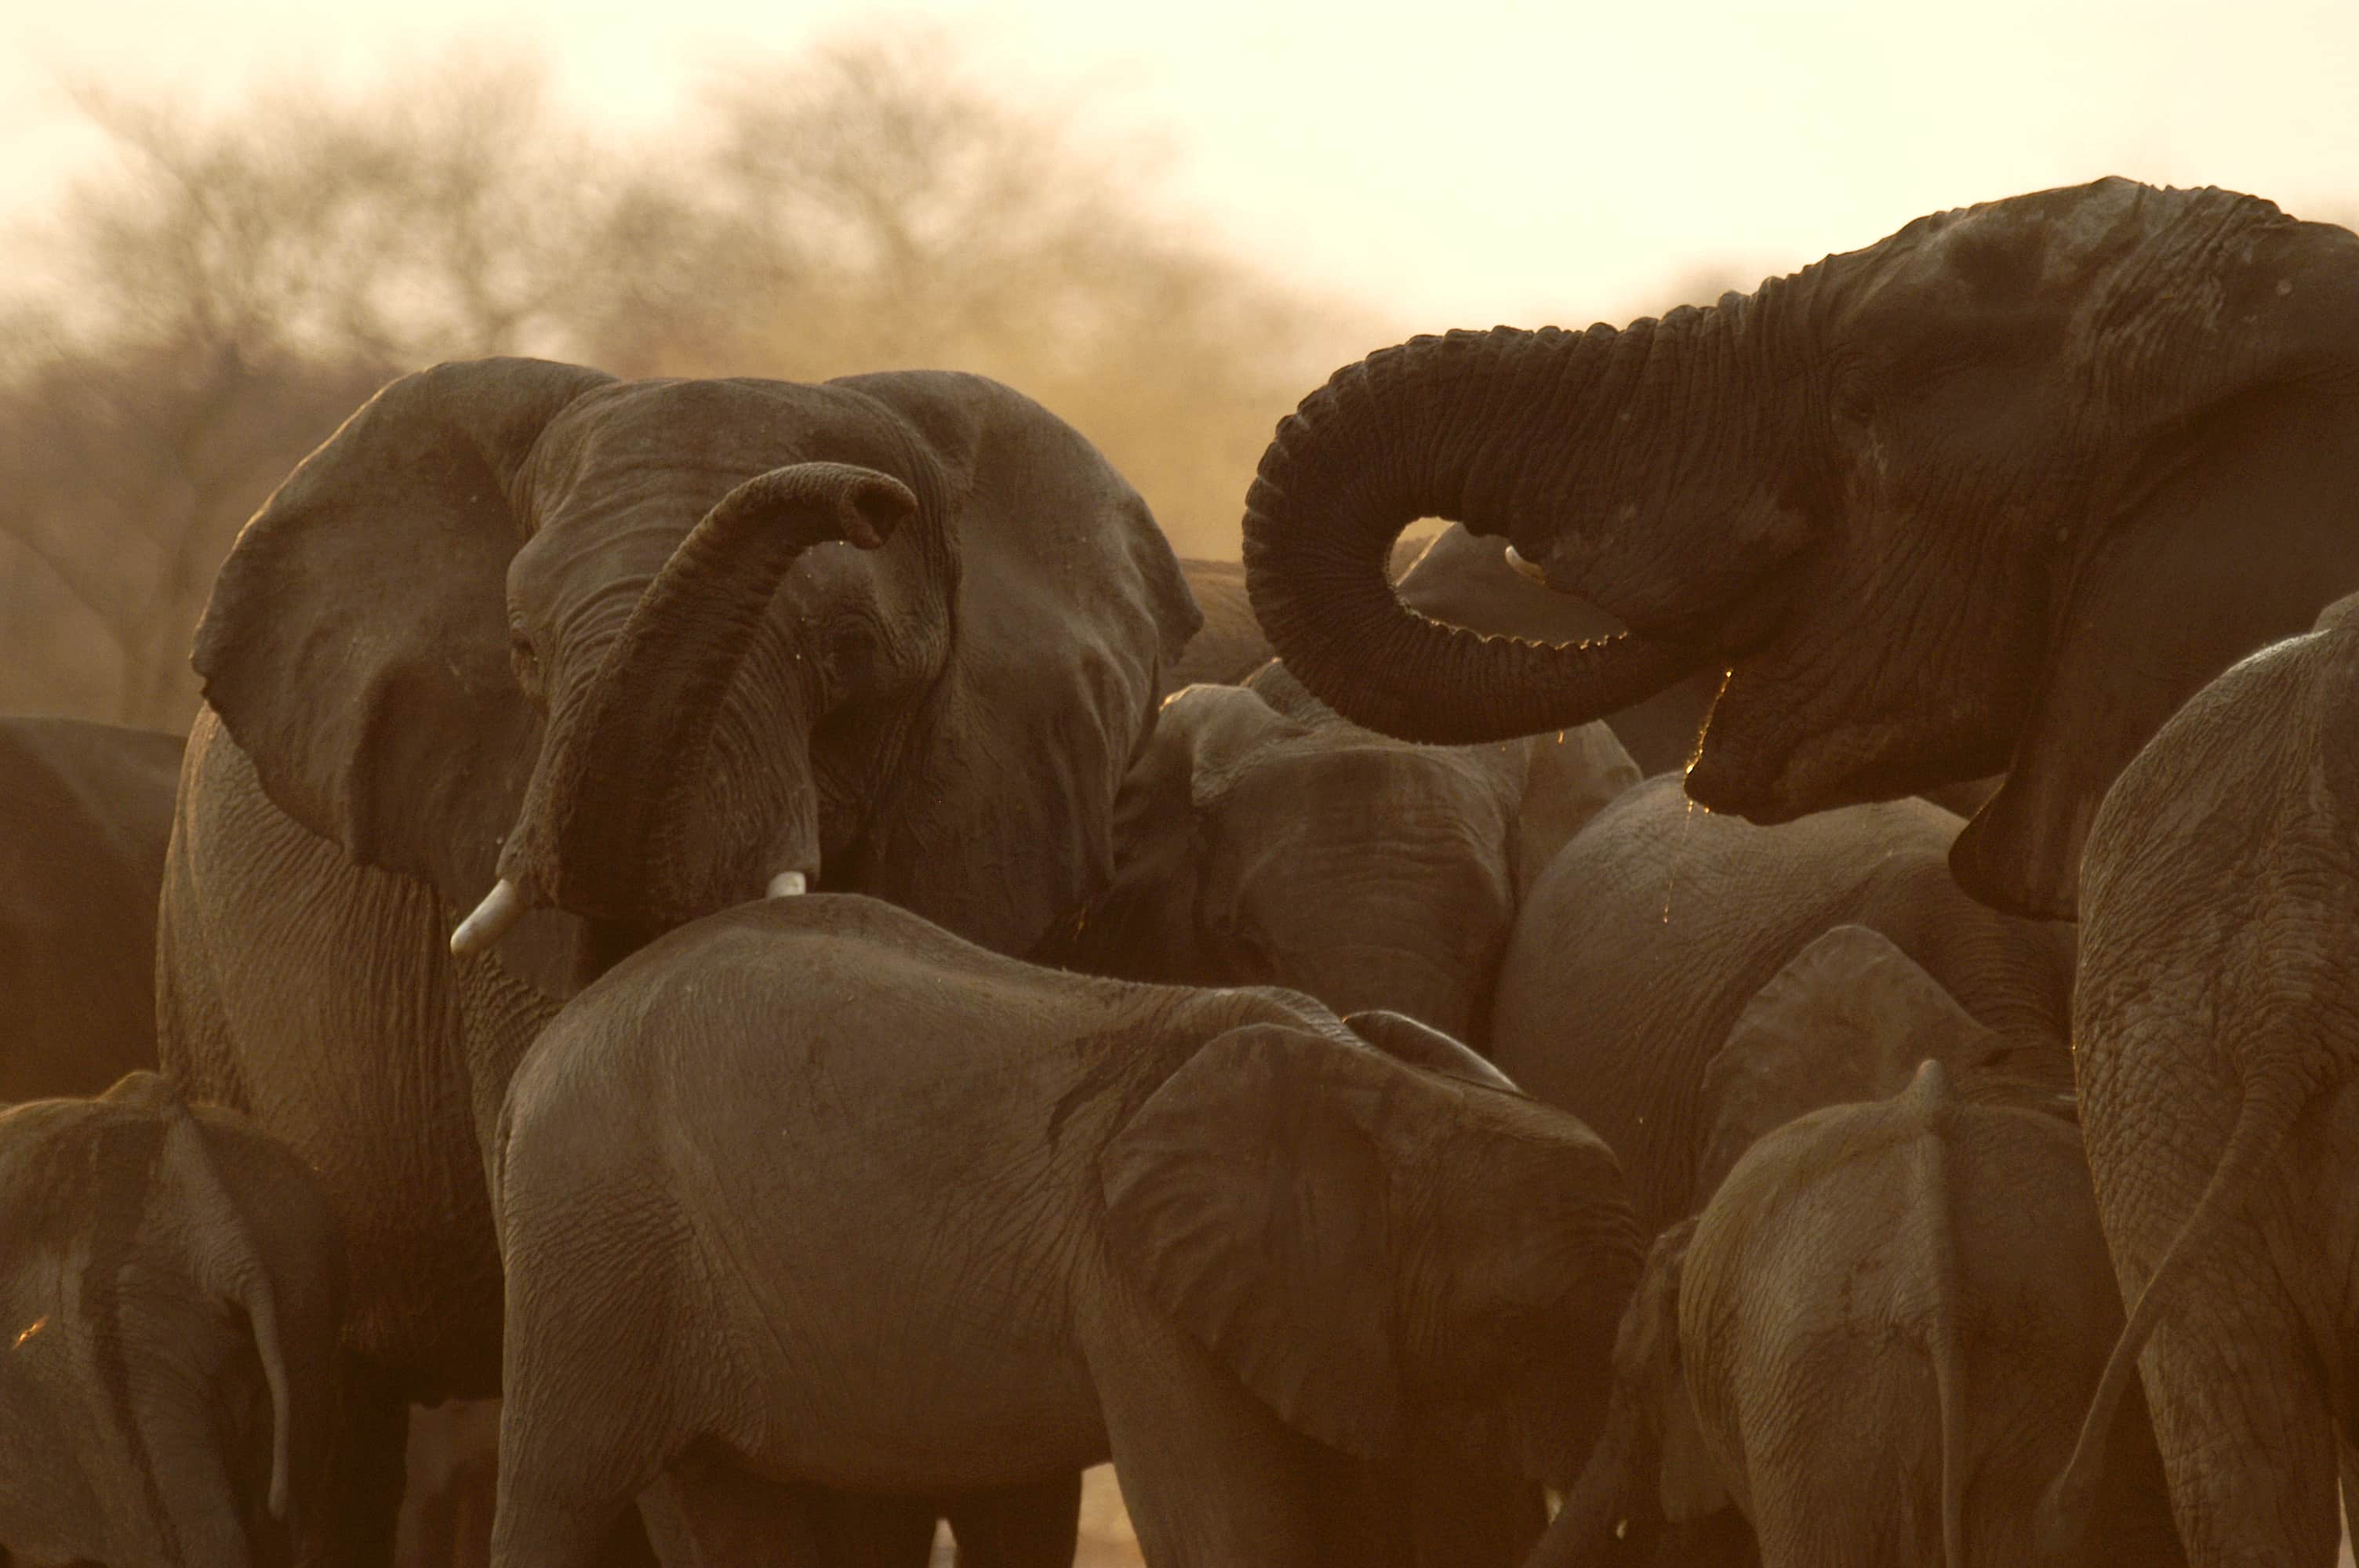 Elephants bunching at a water hole.